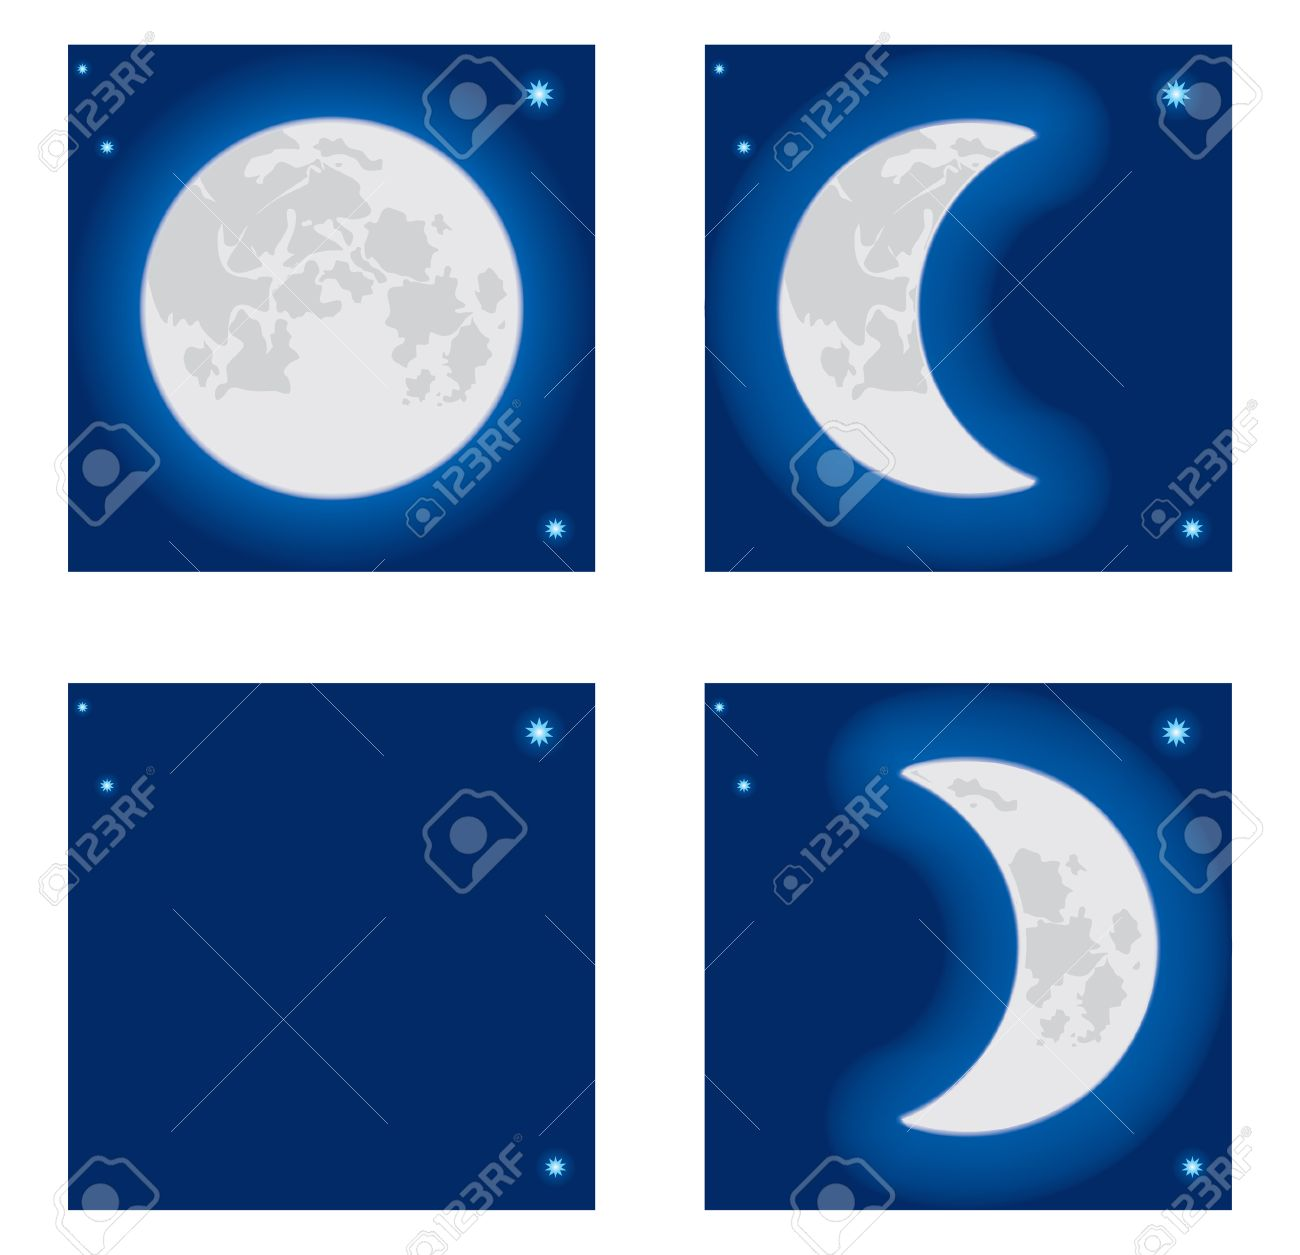 Moon phases clipart free.